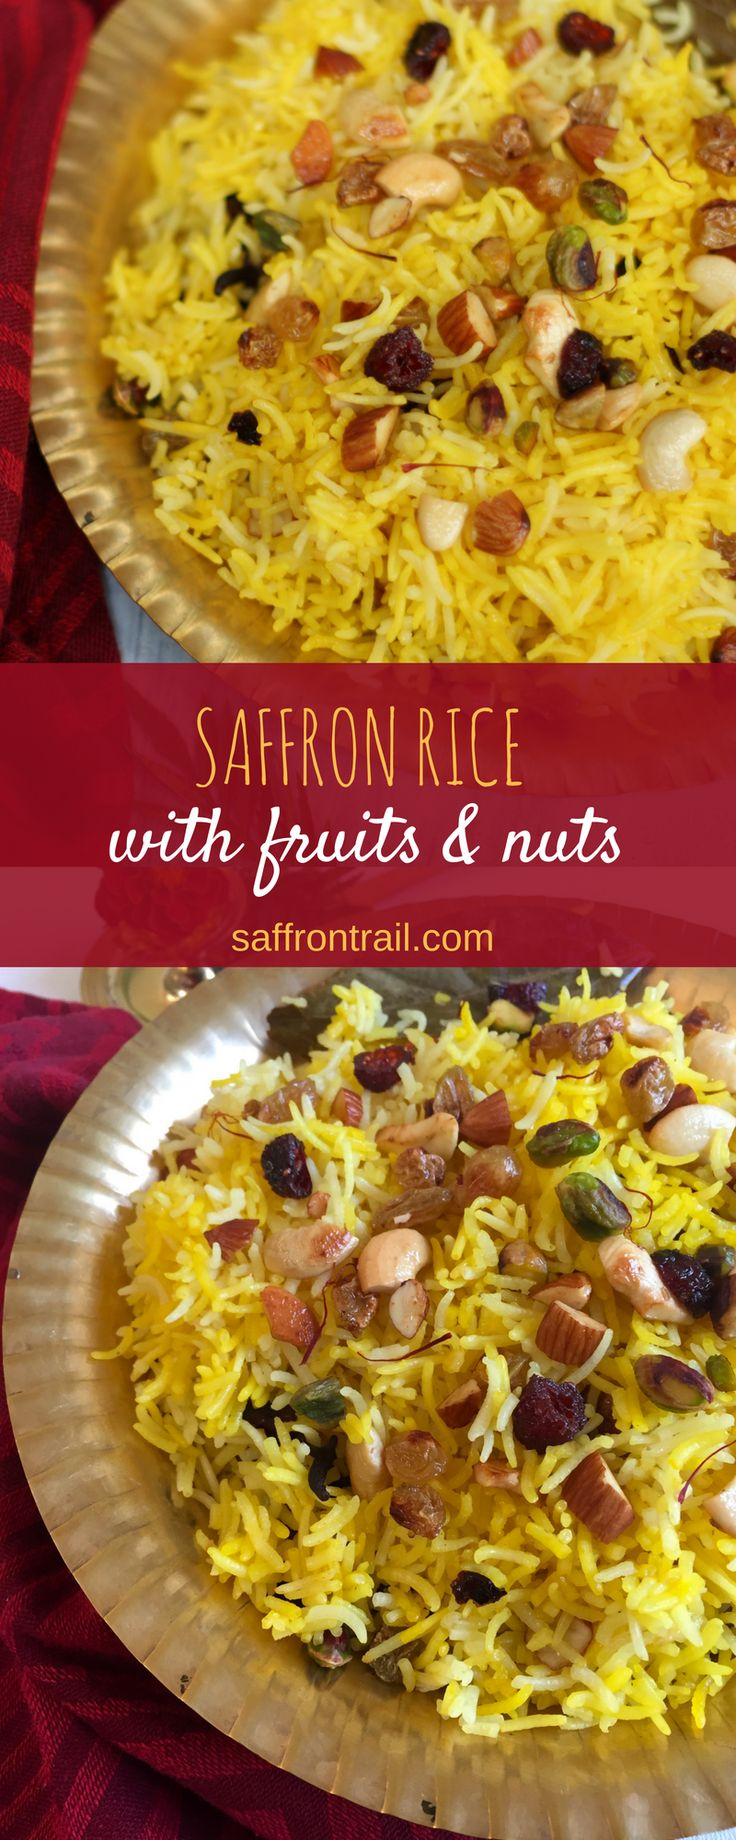 Saffron Rice Pilaf recipe: Long grained basmati rice doused with saffron milk and tossed along with ghee-roasted nuts and dried fruits makes one hell of a beautiful and festive rice dish. Serve with any spicy curry to make a complete meal. #Diwalirecipes #Diwali